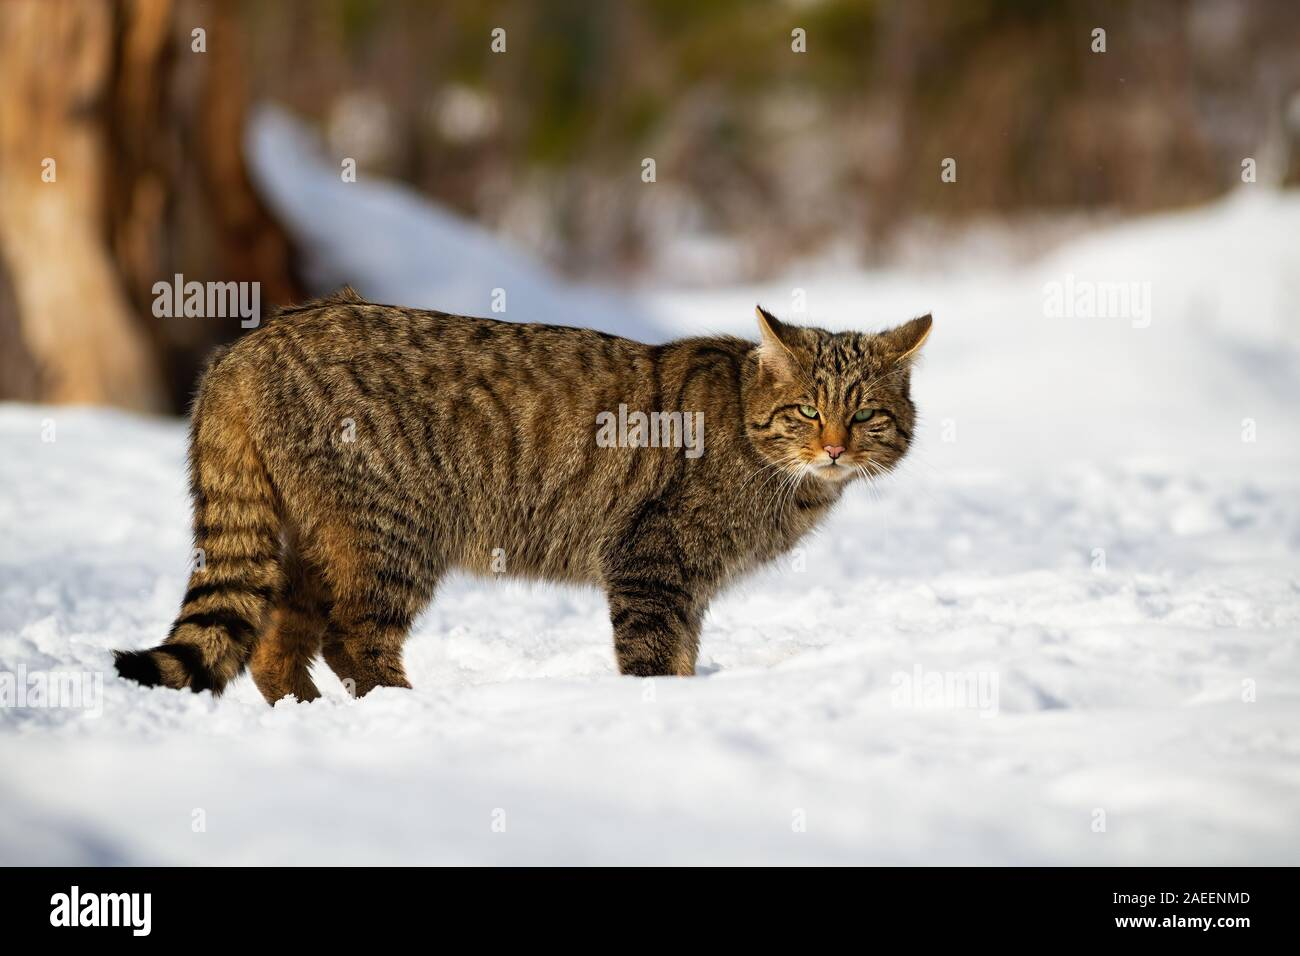 European wildcat and his penetrating look in the snowy forest Stock Photo